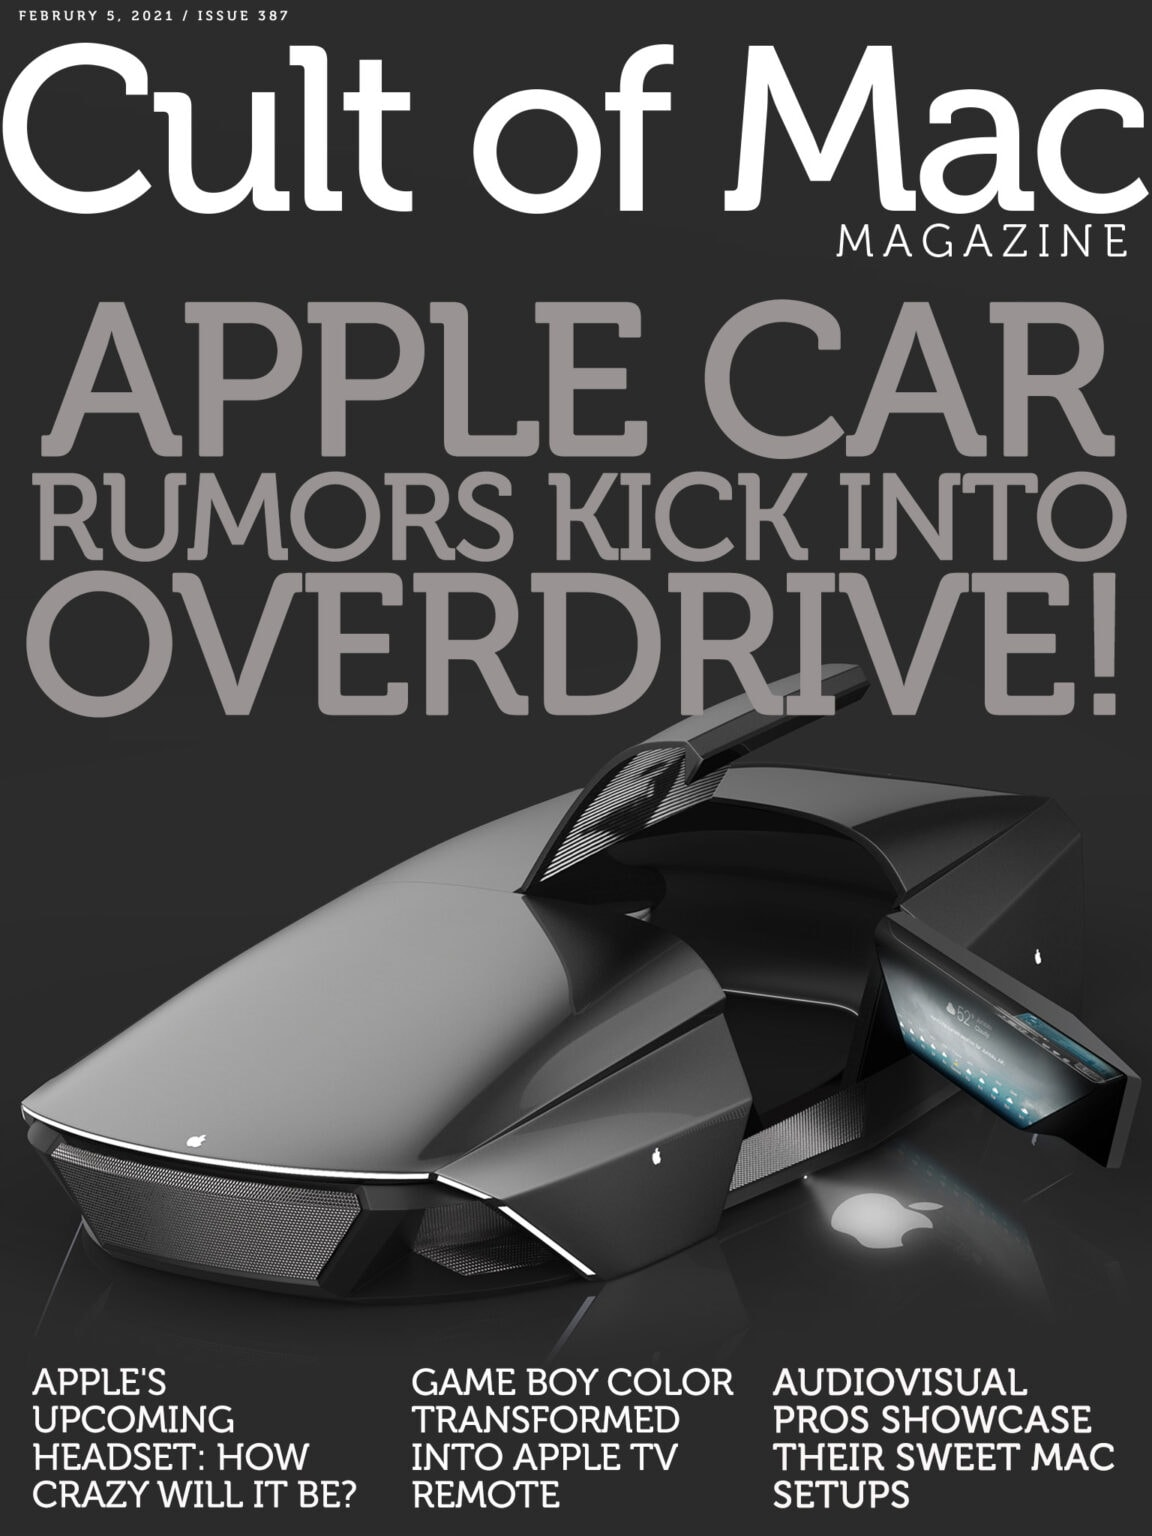 Apple car rumors shift into overdrive.